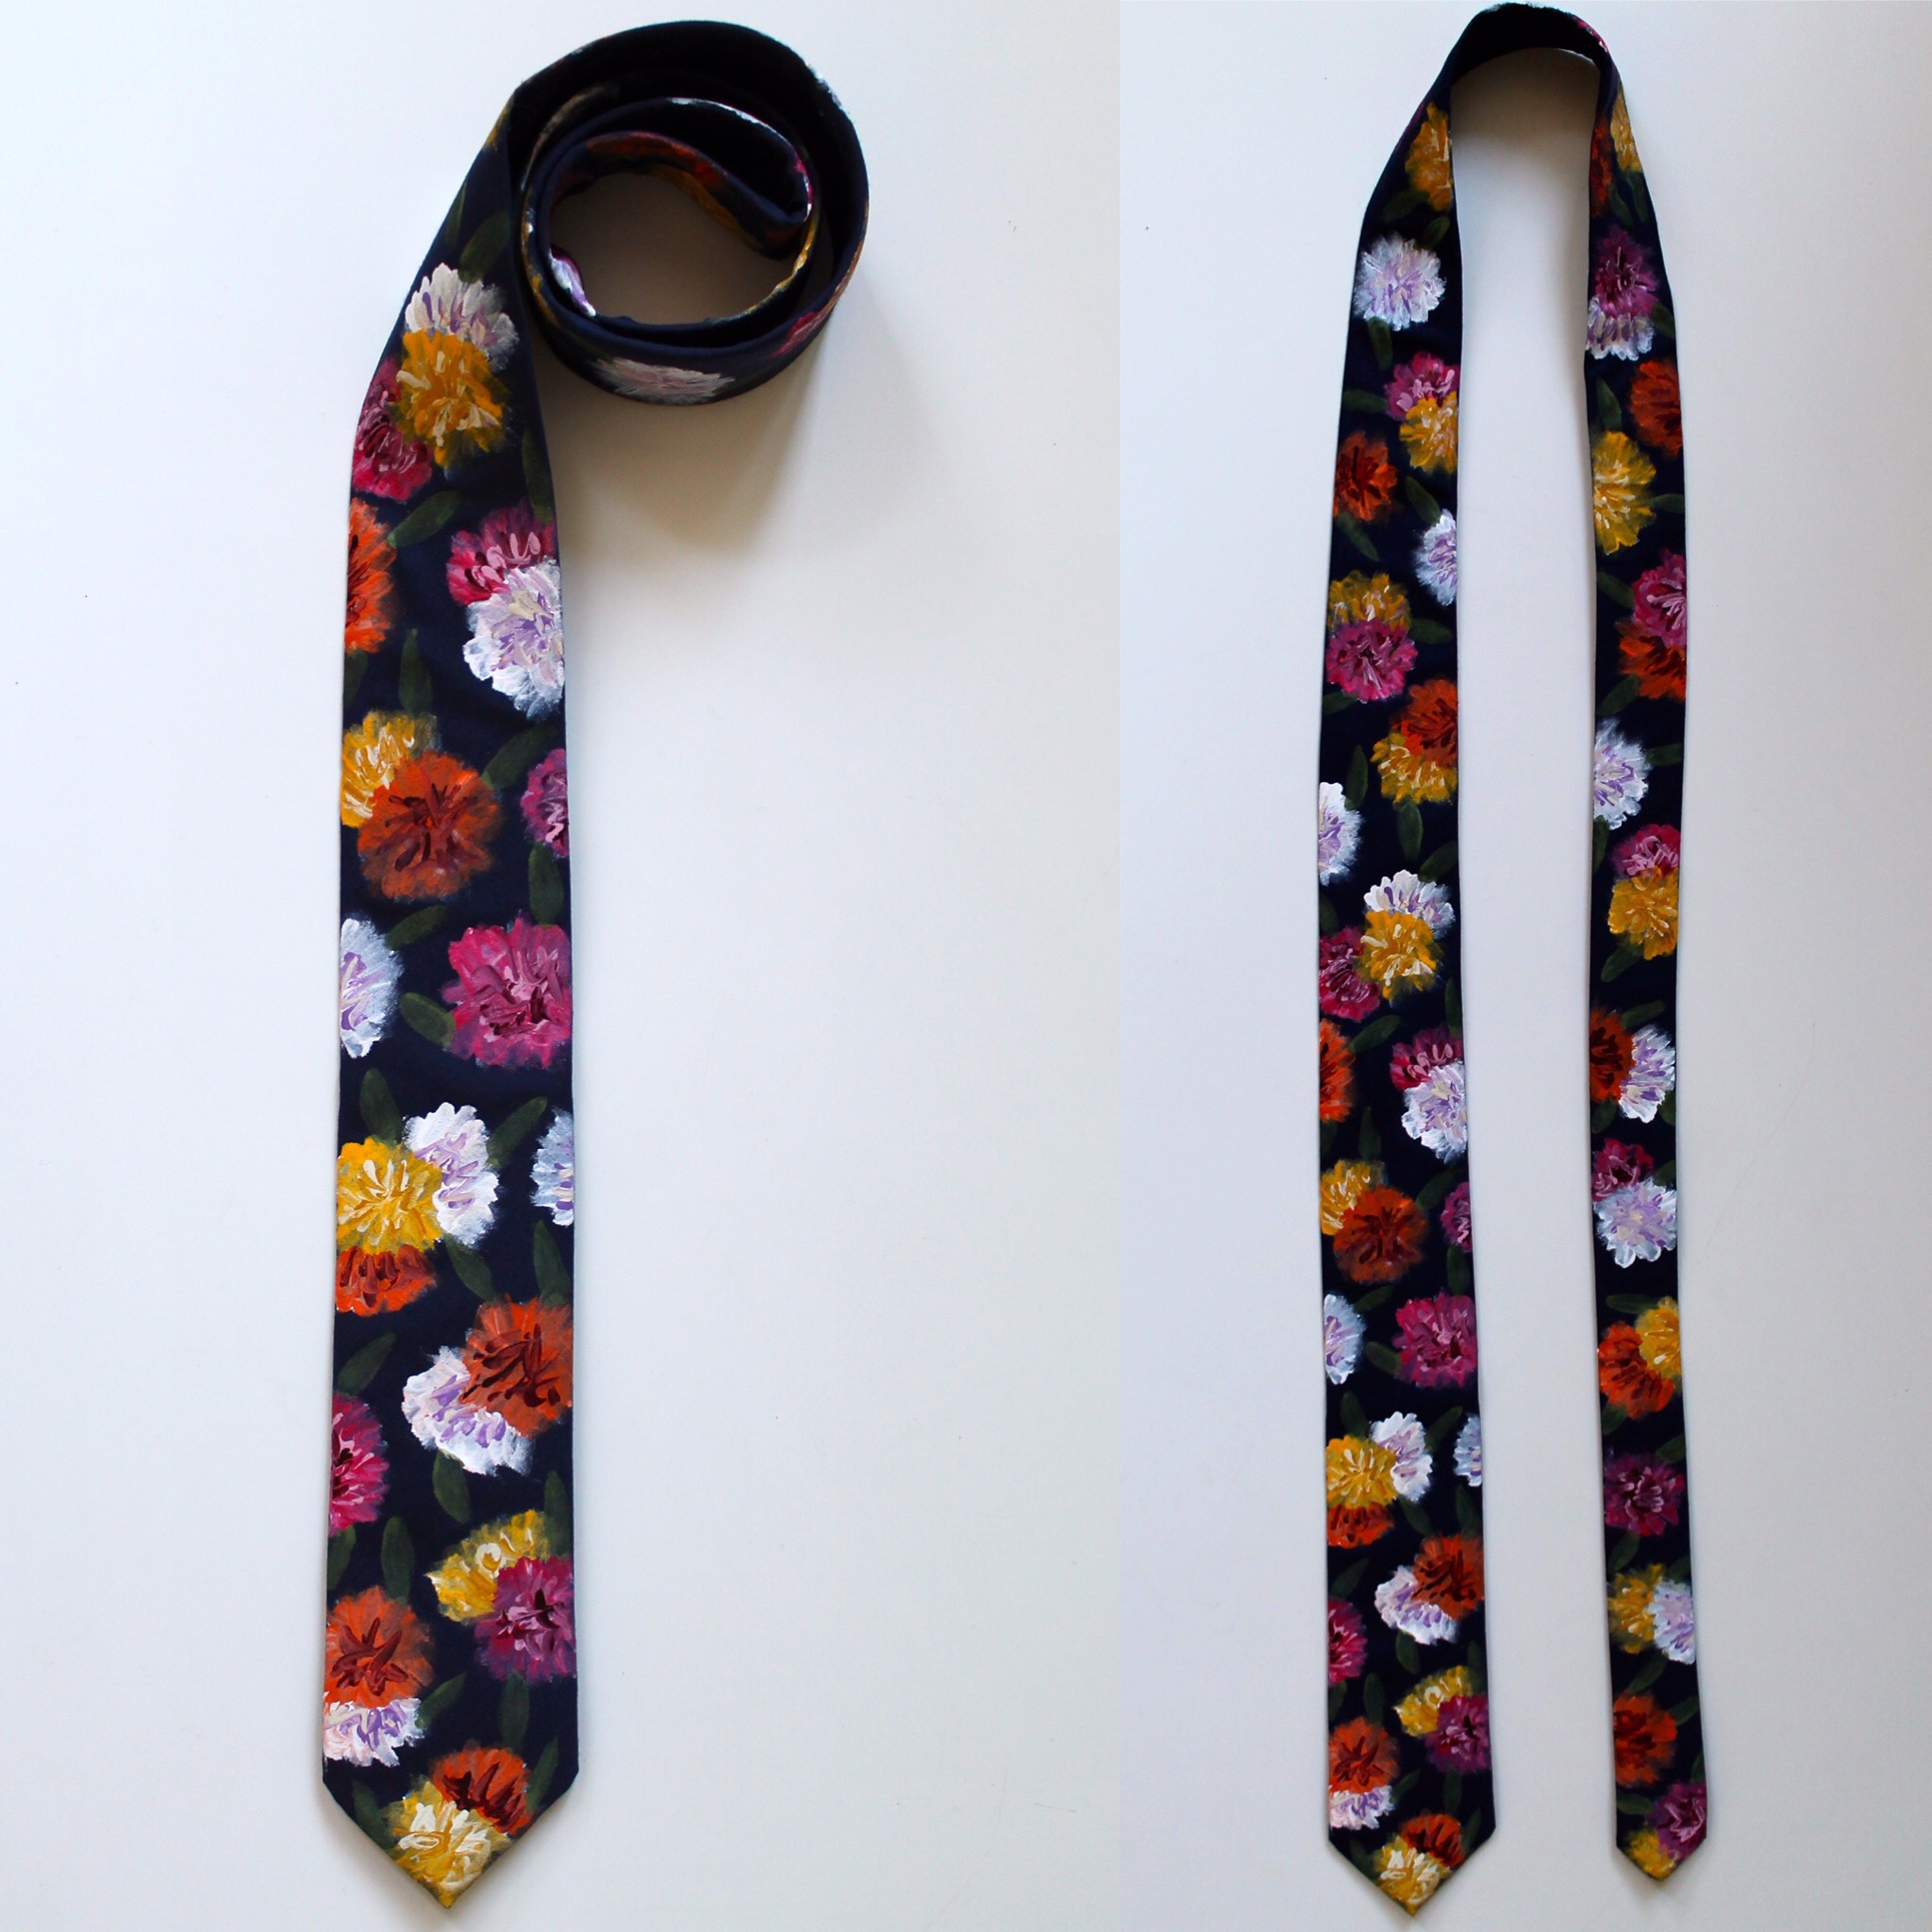 edward kwan hand painted neckties ties melbourne australia.JPG